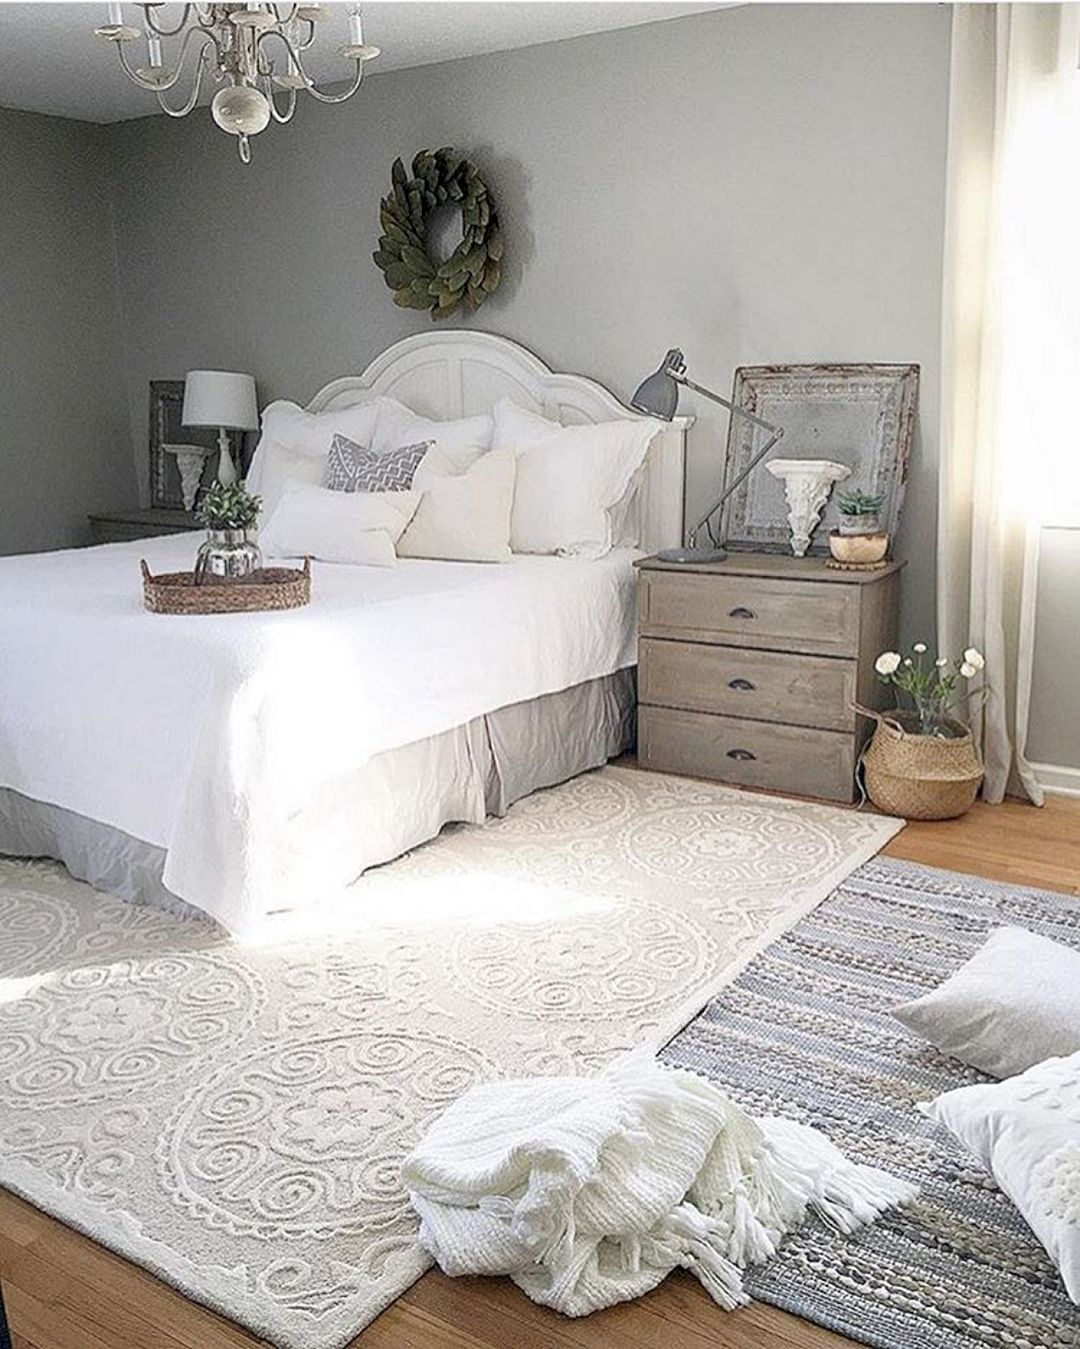 137 DIY Rustic And Romantic Master Bedroom Ideas On A Budget Decorxyz